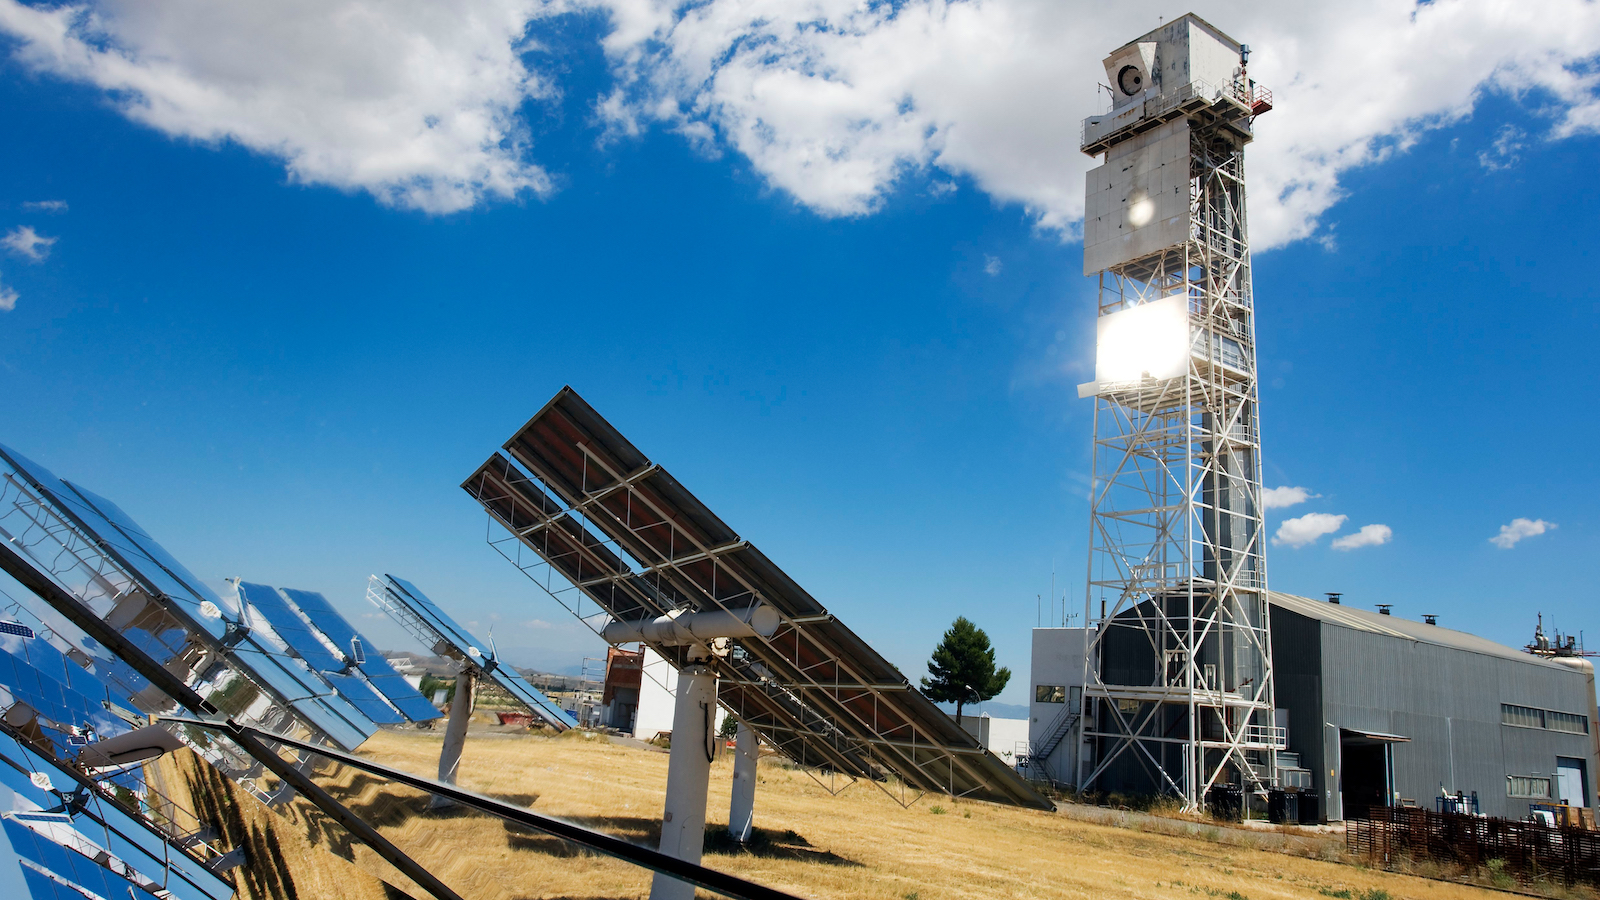 DLR inaugurated the world's largest solar hydrogen reactor in 2017.